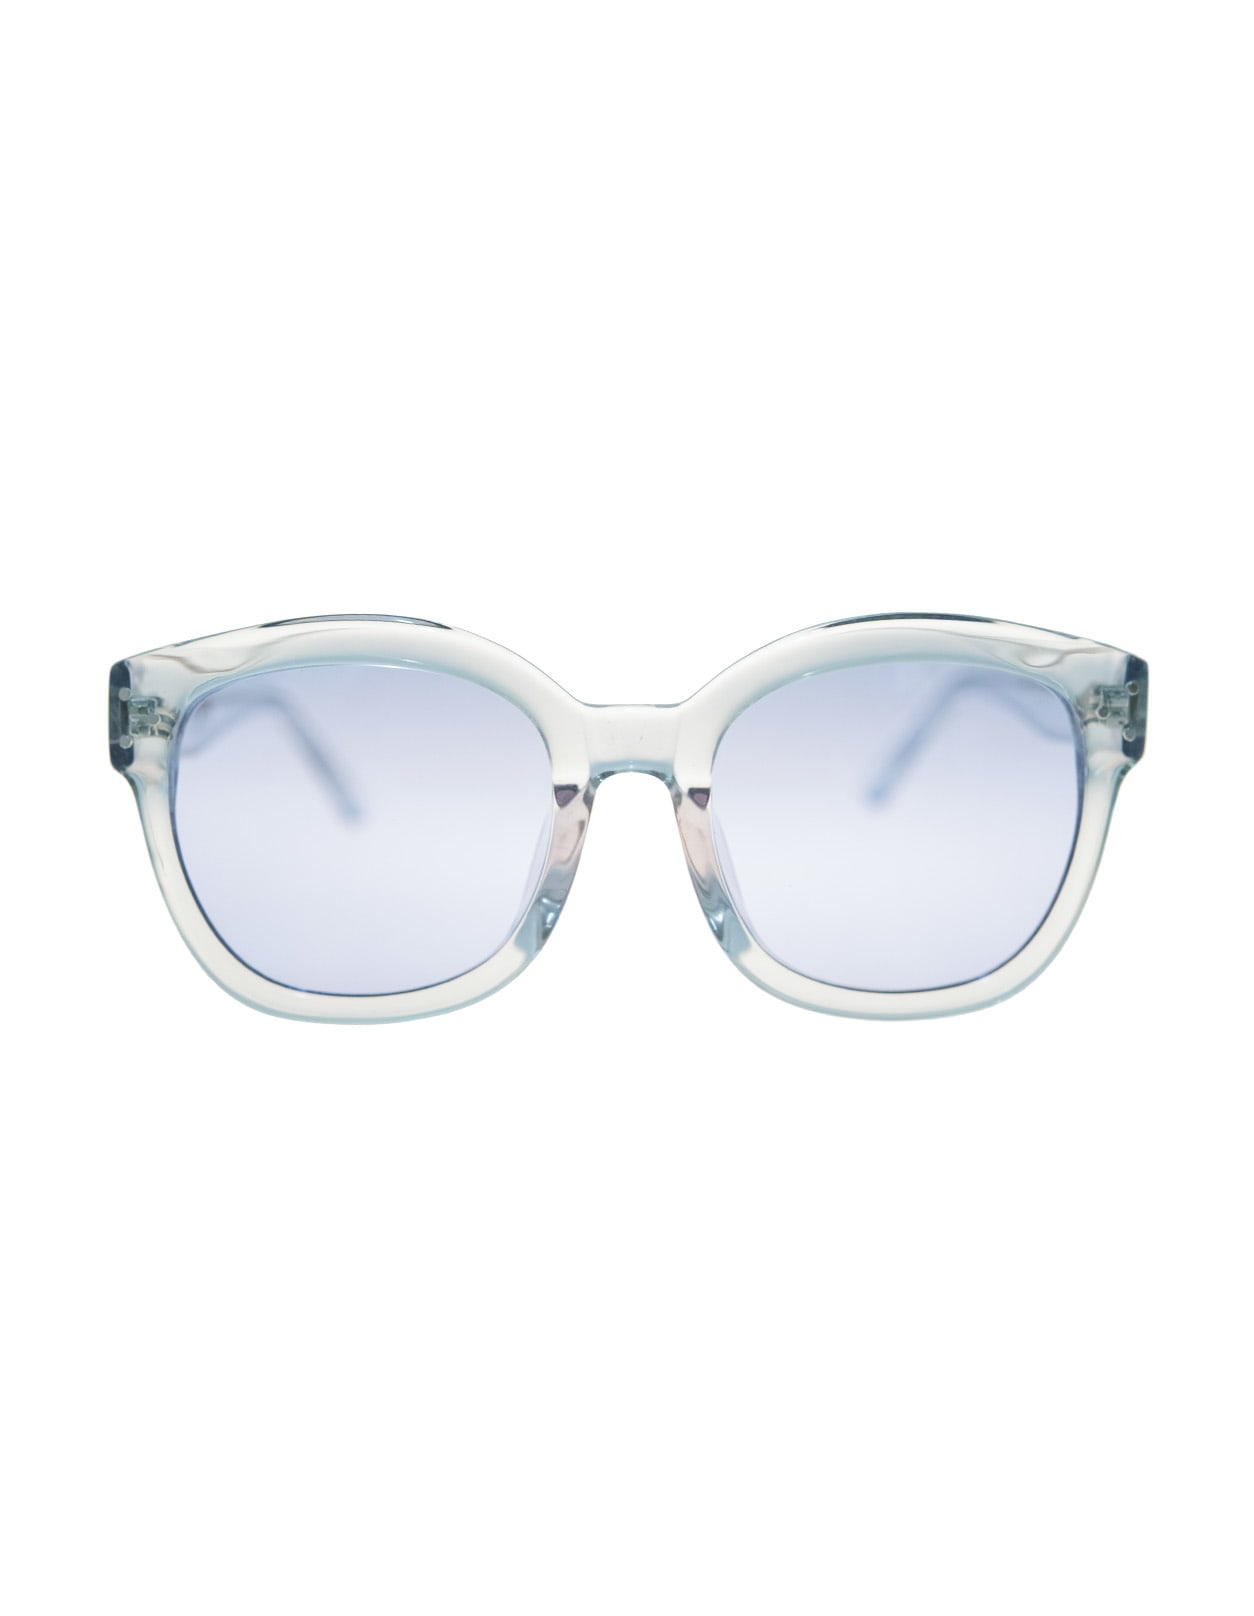 Unisex Light Blue Bellucci Sunglasses